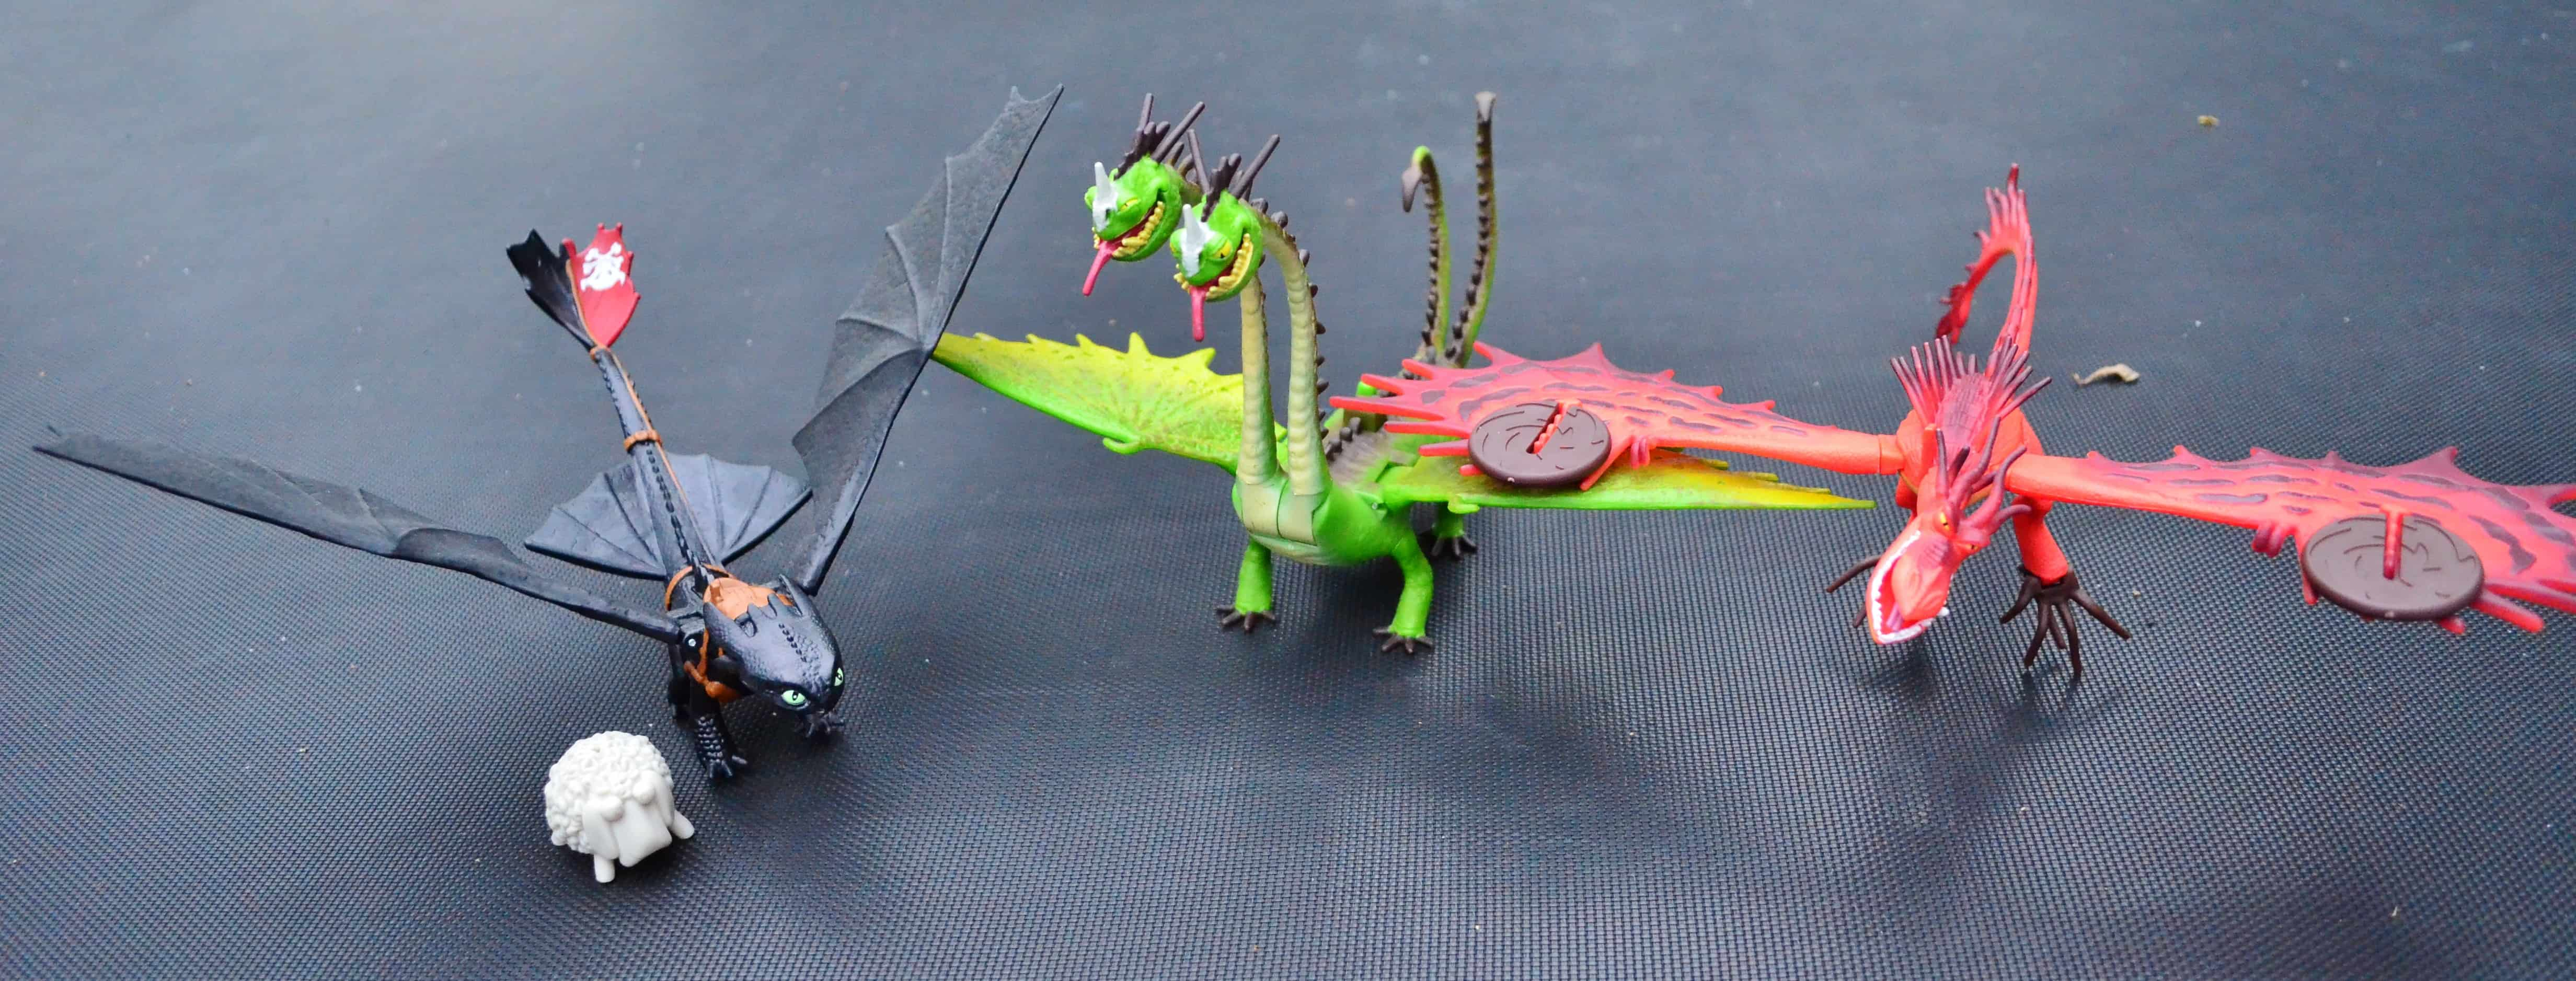 Dreamworks How to Train Your Dragon COOL Action Figure Toys Review